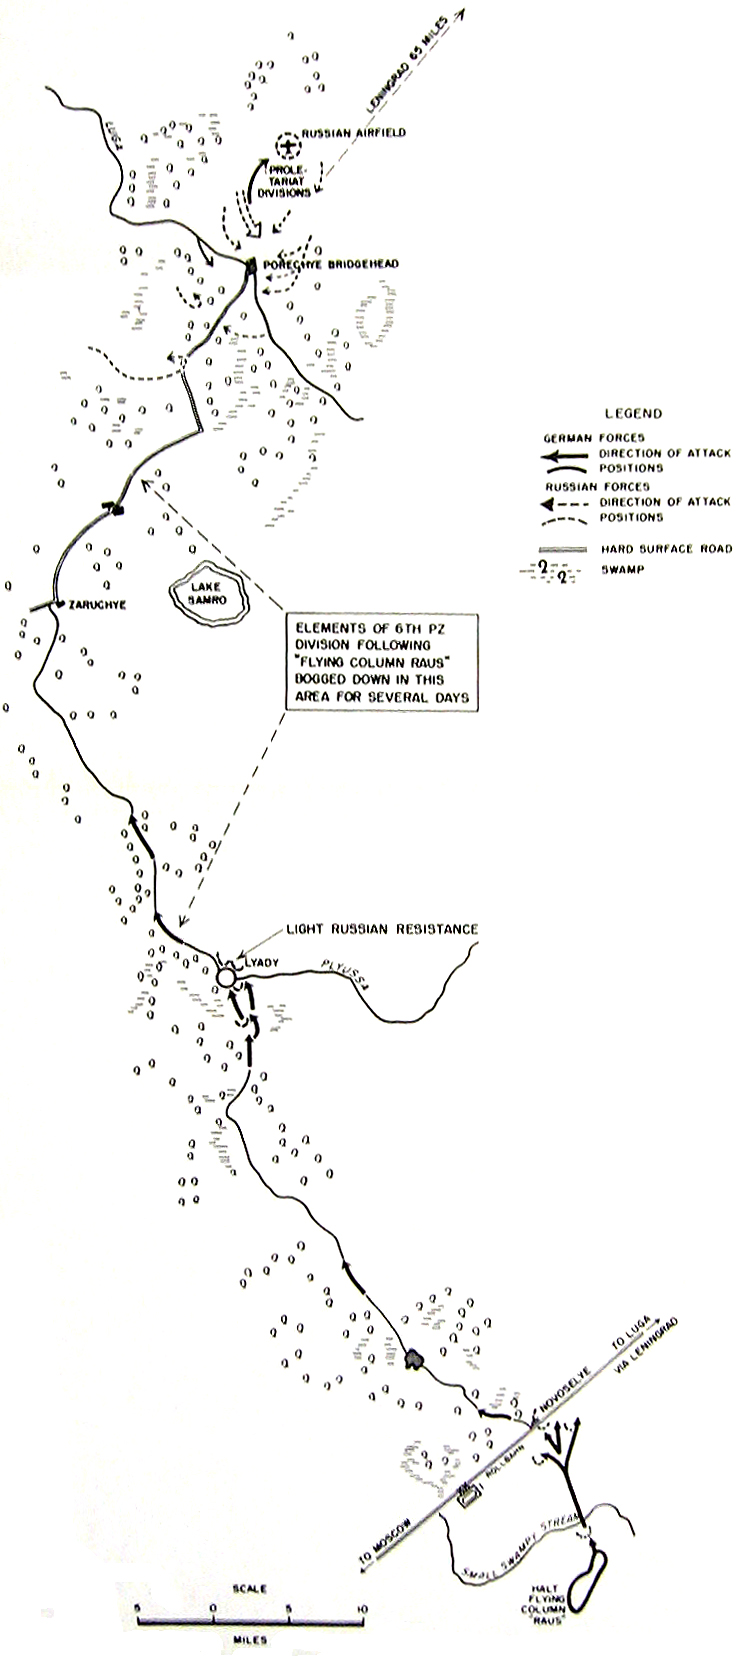 MAP 3.	Advance of Flying Column Raus to the Porechye Bridgehead